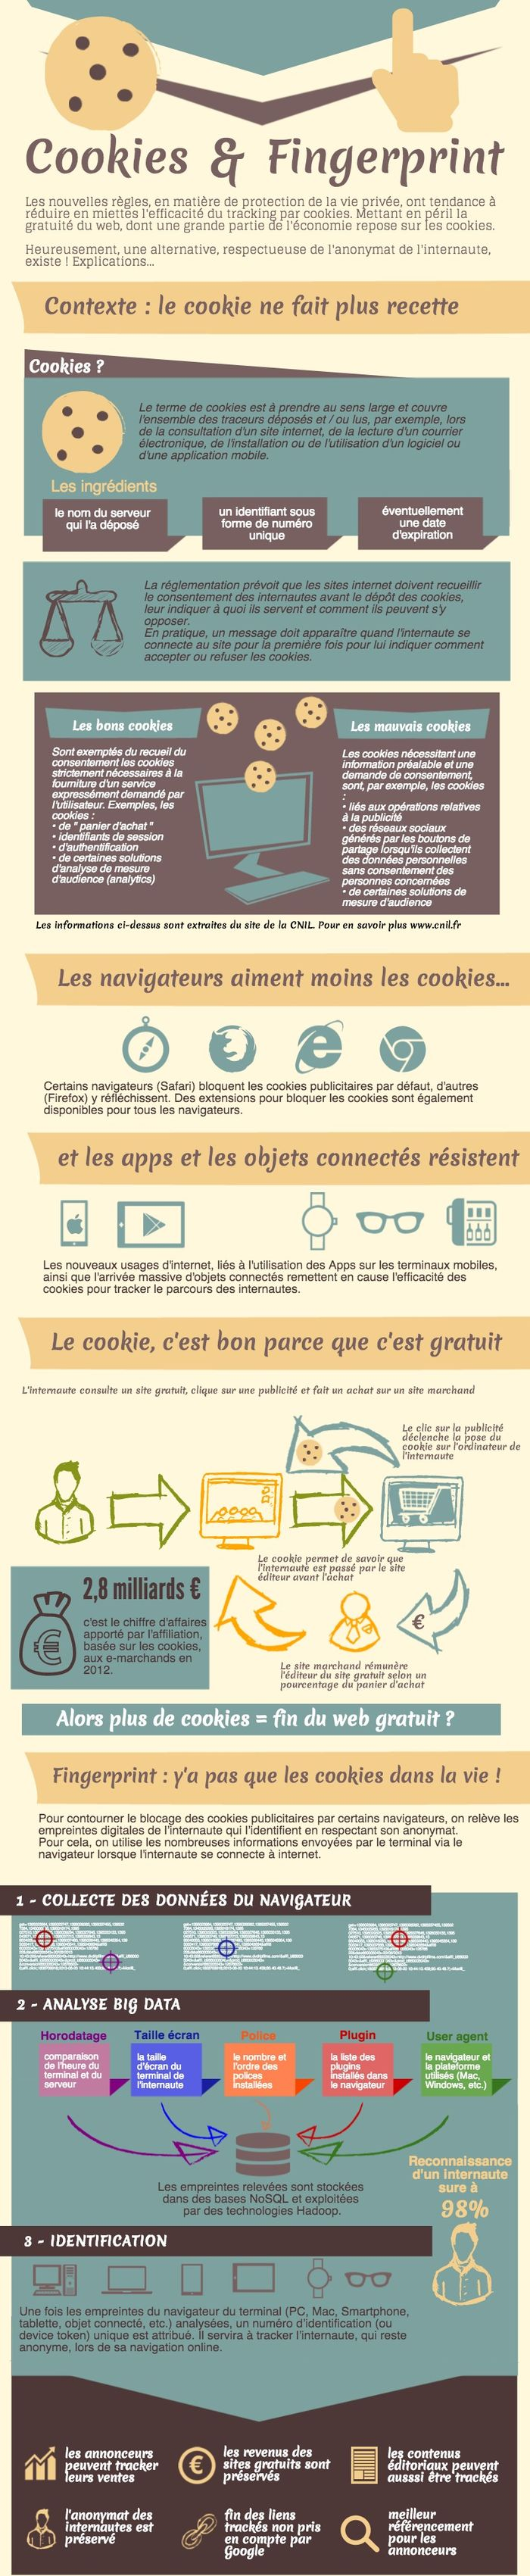 (c) infographie : Effiliation - cookies et fingerprint